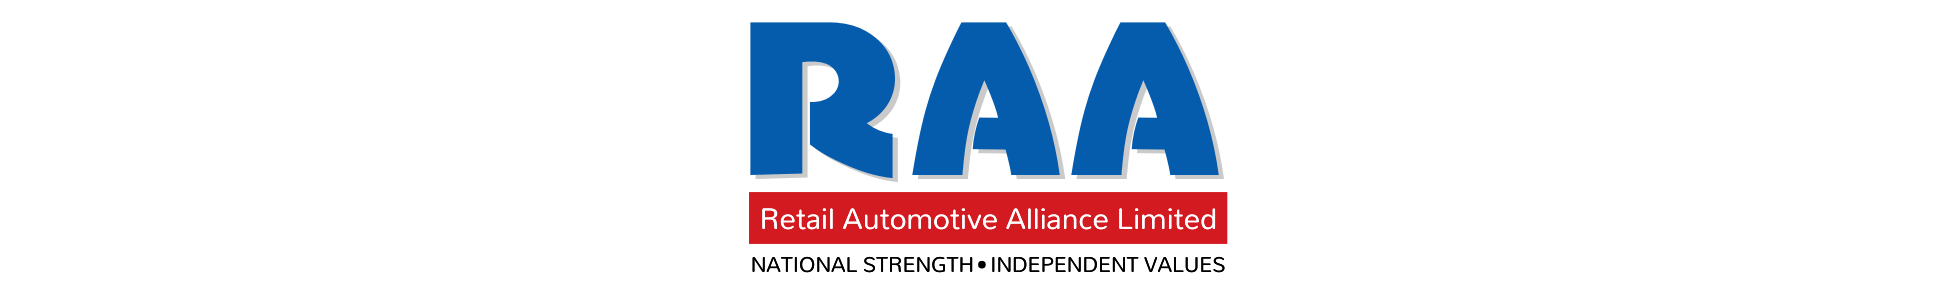 Retail Automotive Alliance Limited (RAA) – National Strength, Independent Values